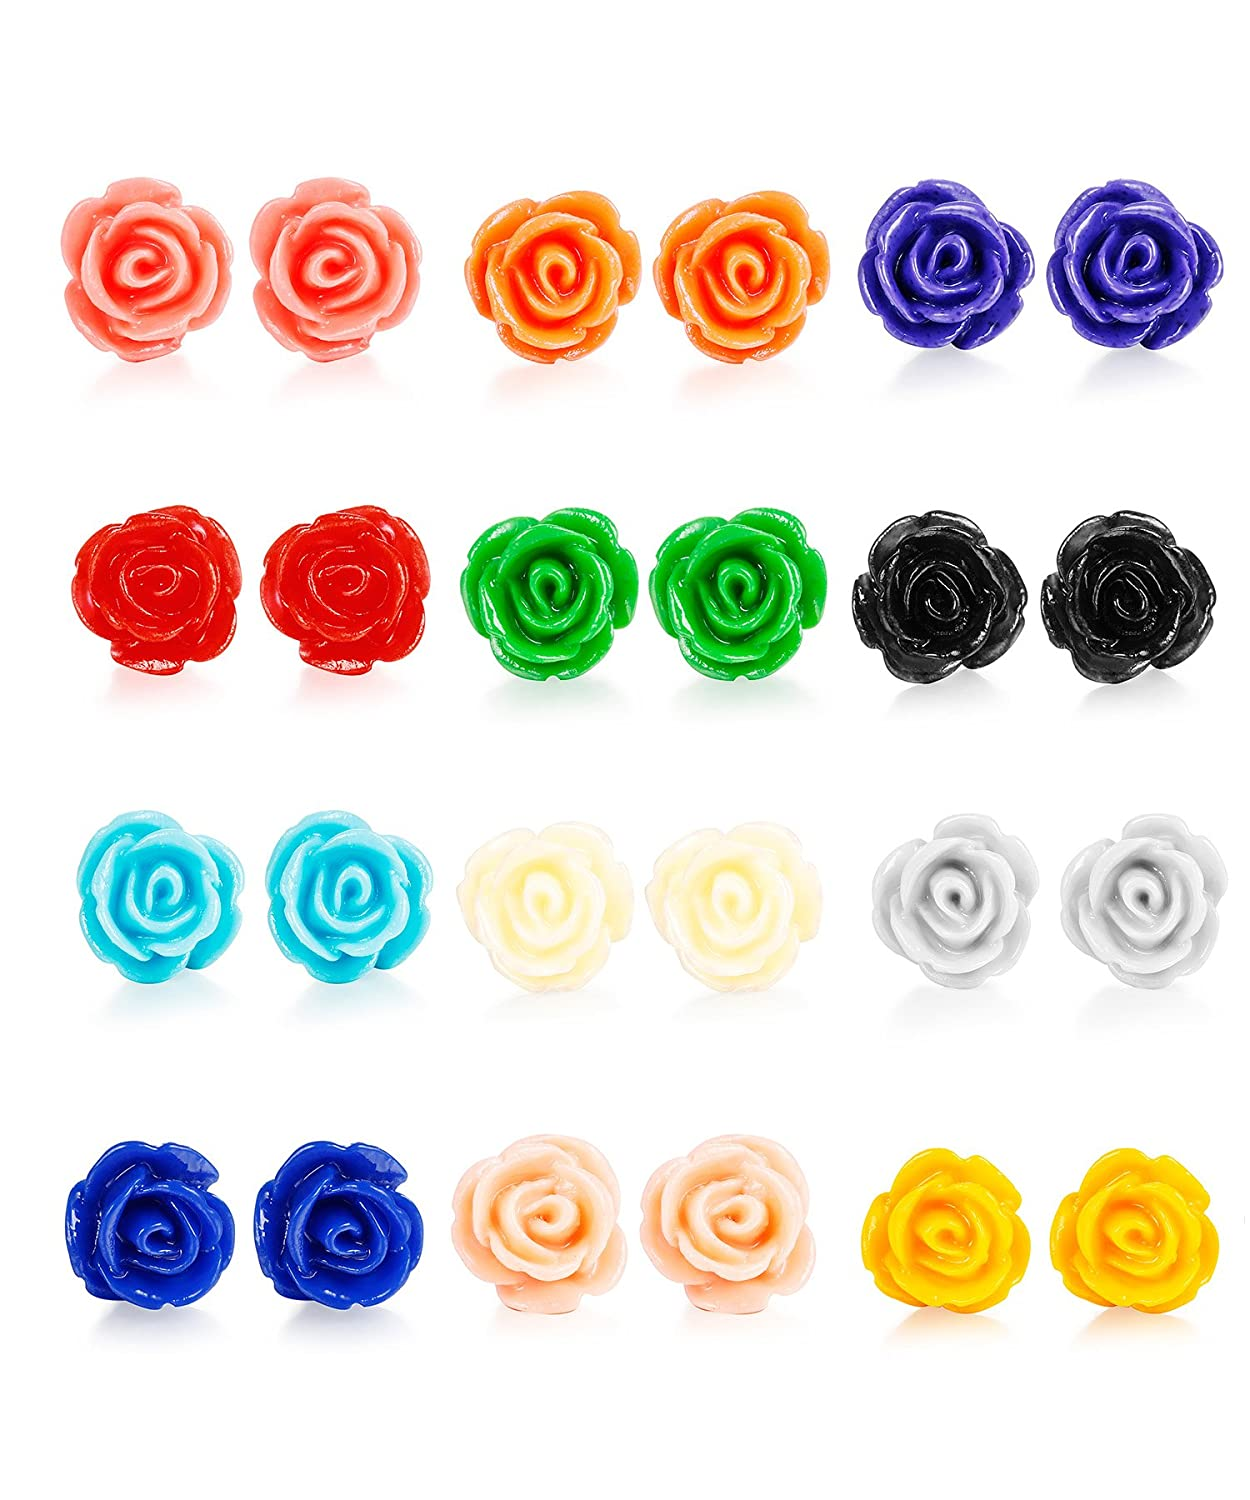 LOYALLOOK 12 Pairs Assorted Colors Resin Rose Flower Earring Studs Set Stainless Steel Post,Nickel-free Nickel-free 10MM TI0520003-12